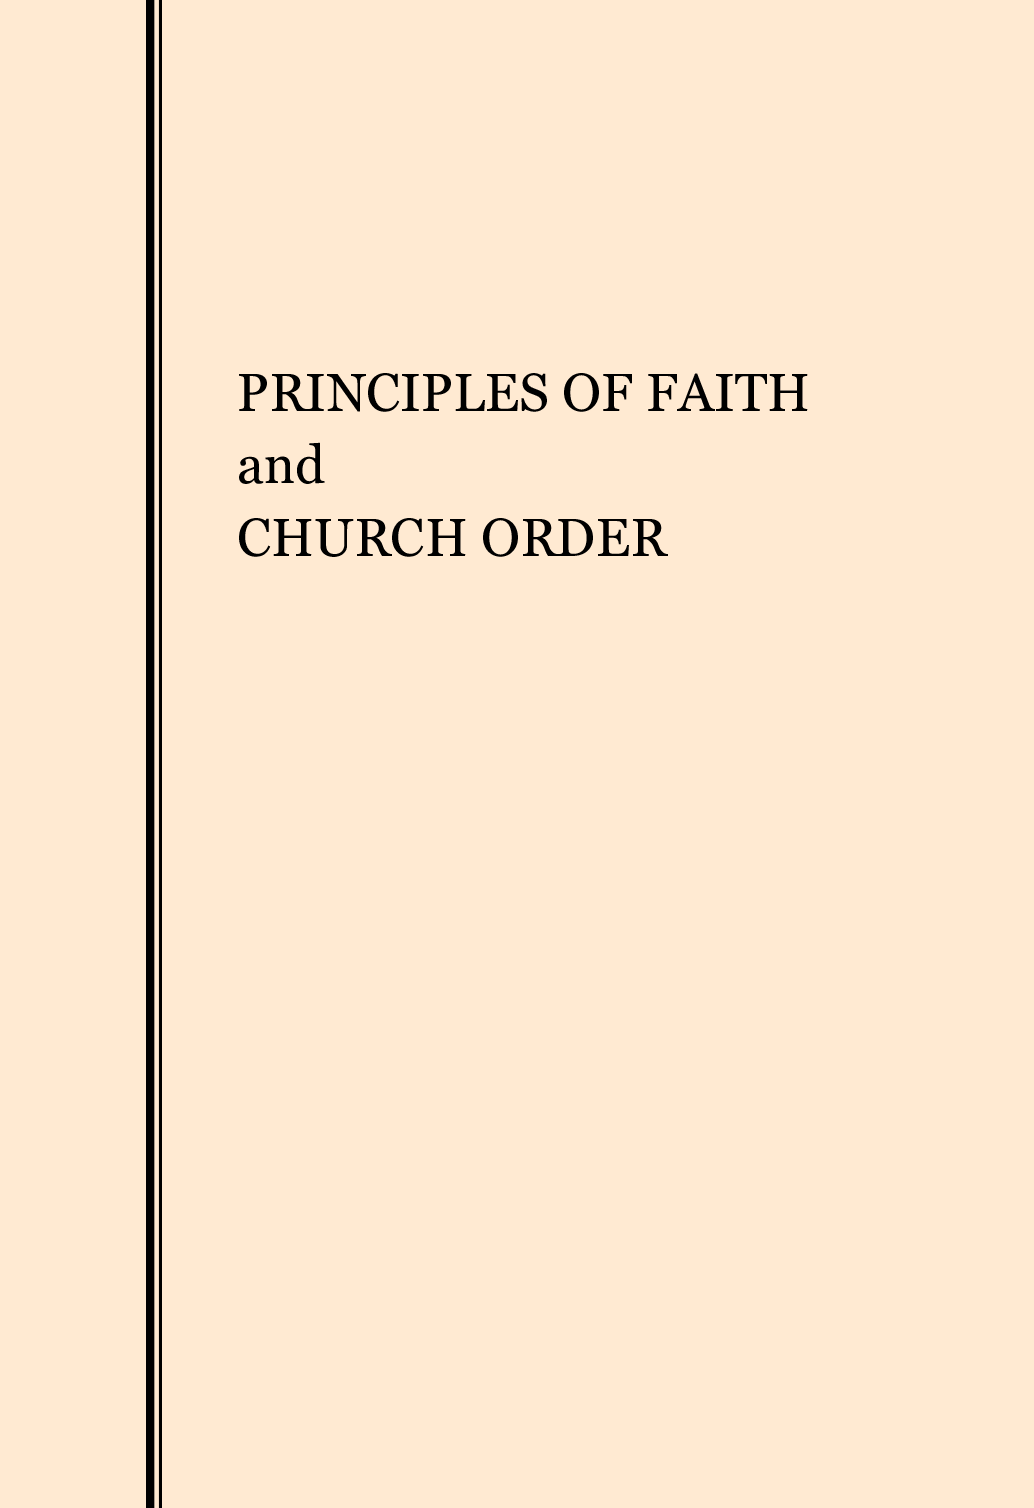 Principles of Faith and Church Order